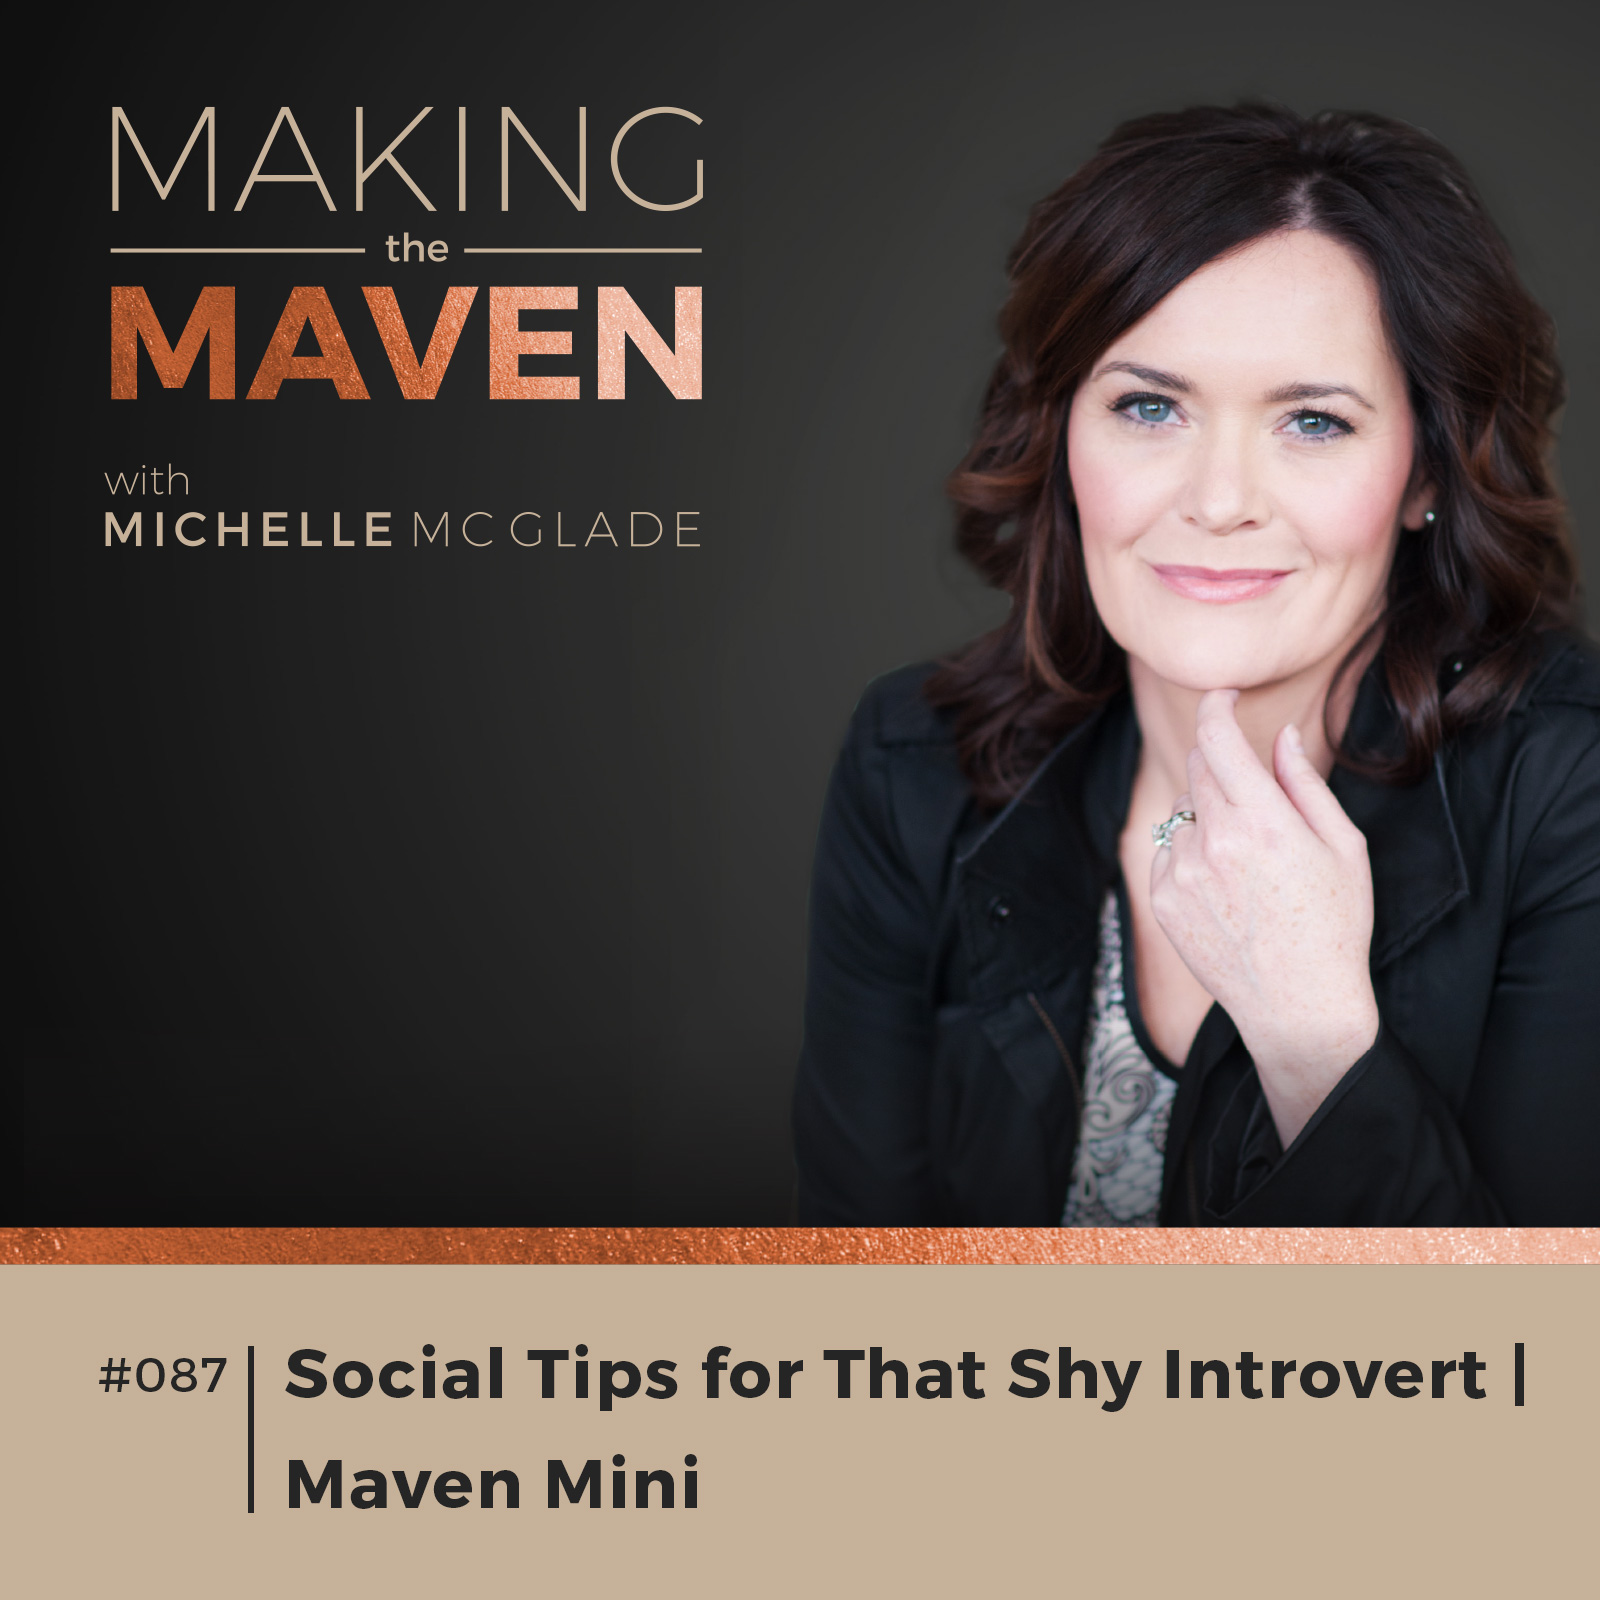 Social Tips for That Shy Introvert